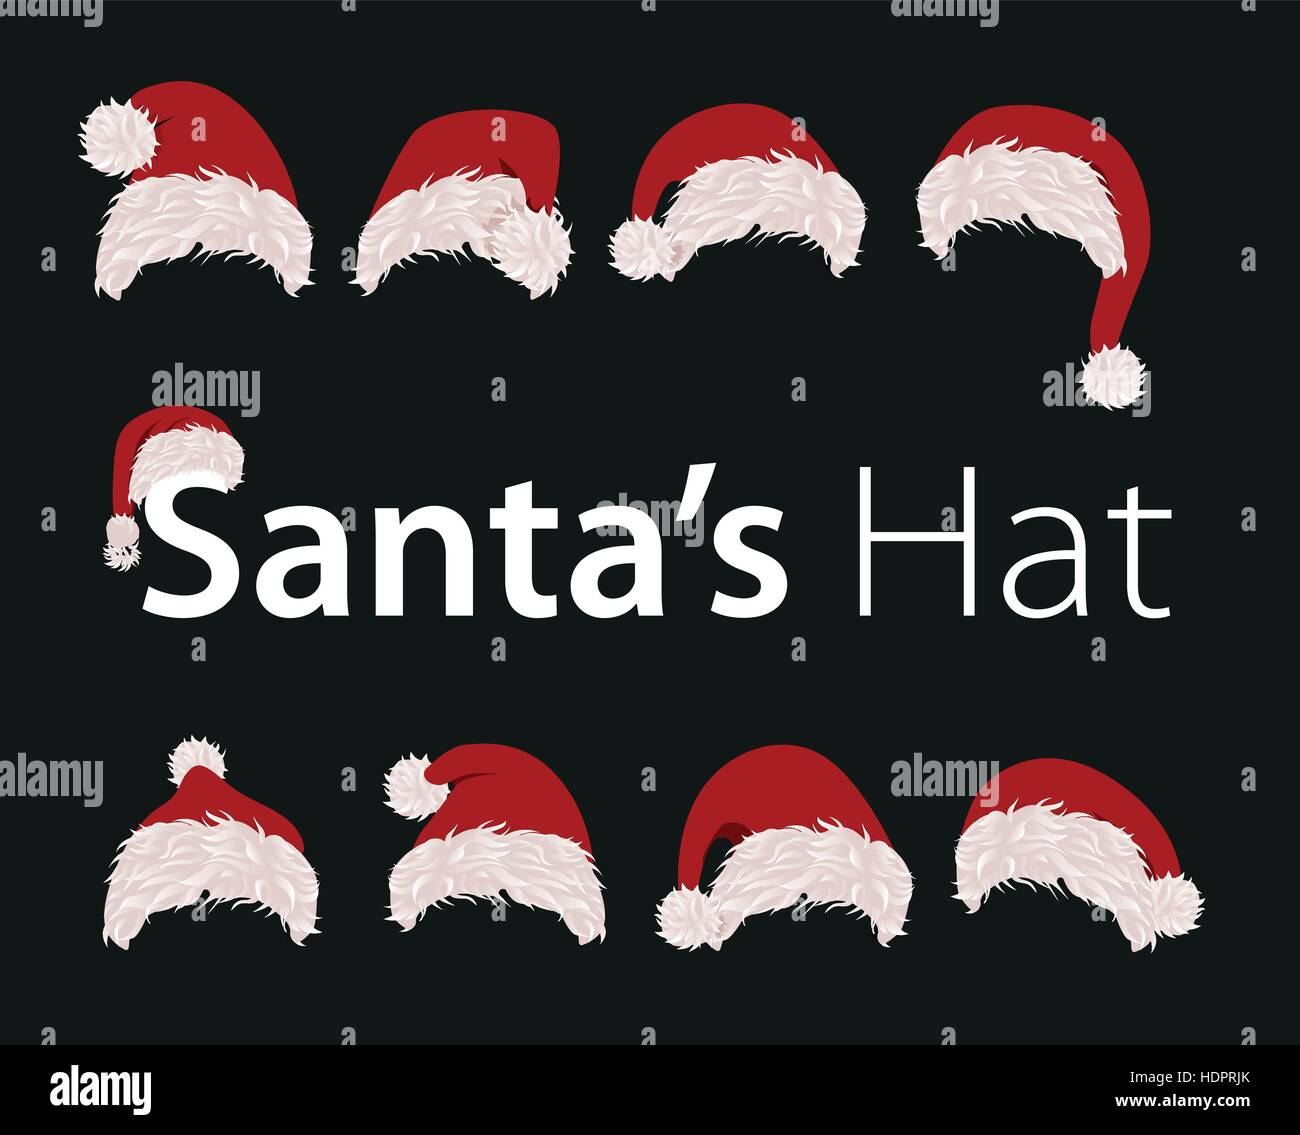 ea9e84ecca3c2 Collection of red santa hats. Vector illustration. New year accessory on  black background. Isolated winter holiday costume element.